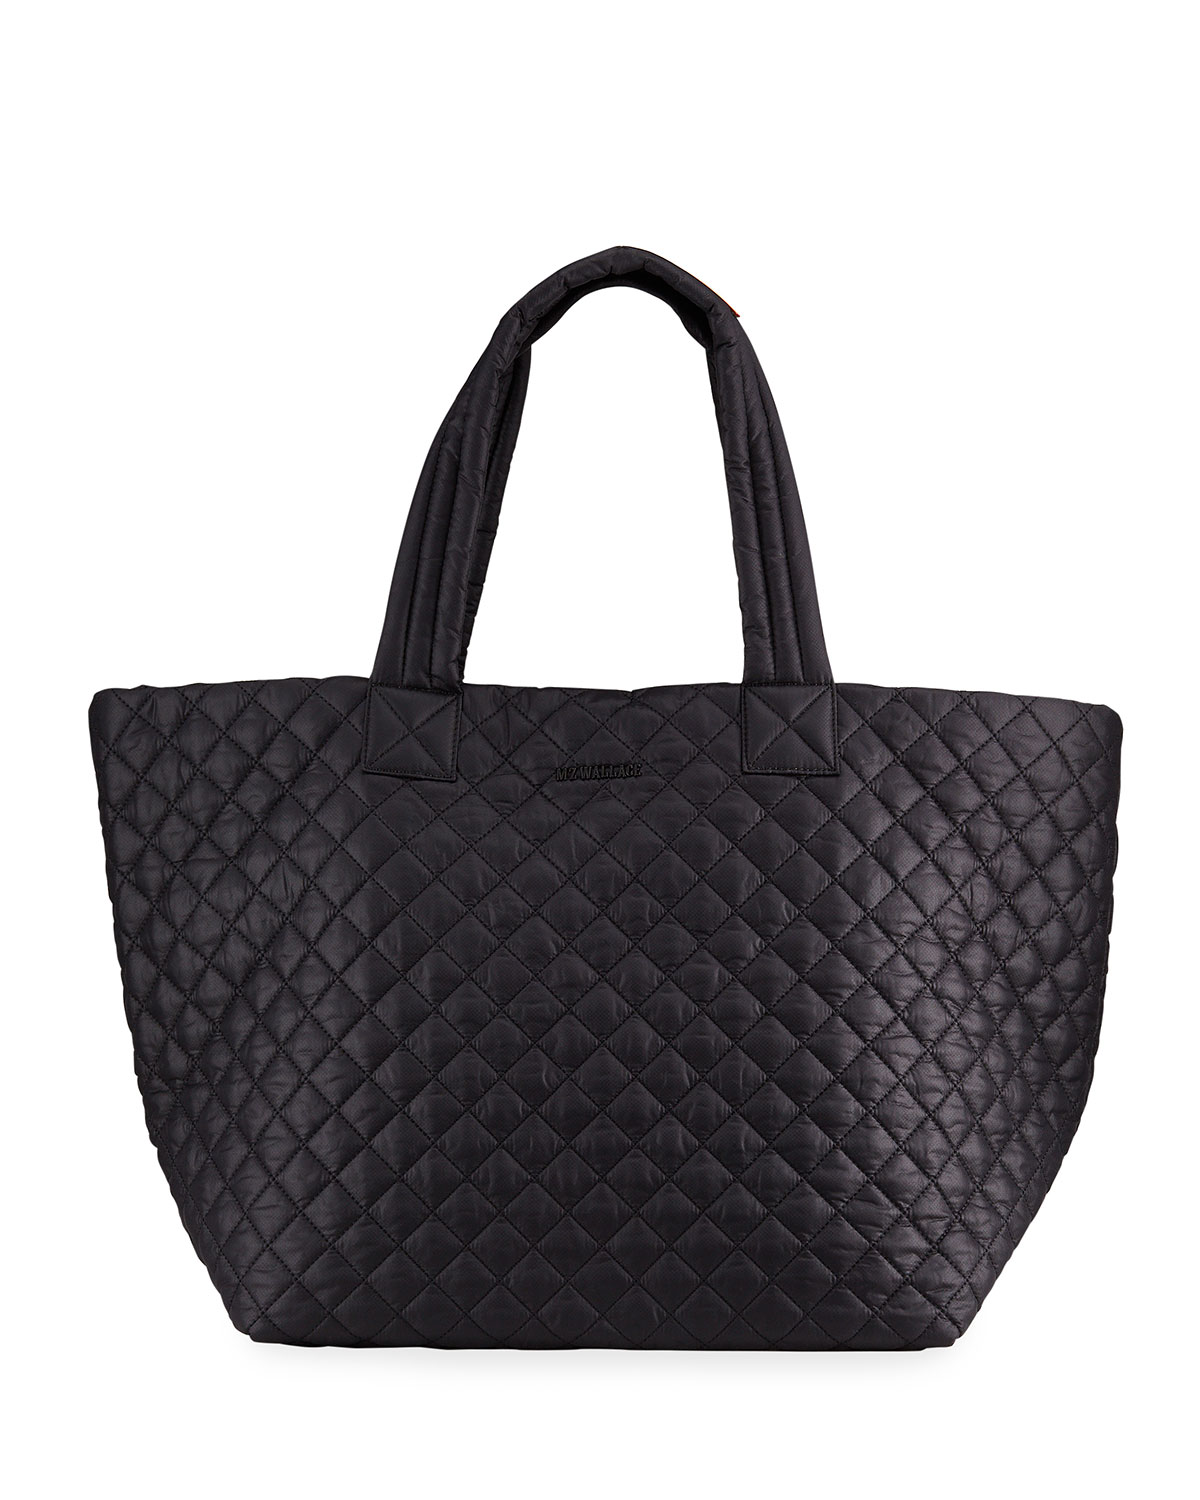 Mz Wallace METRO LARGE QUILTED TOTE BAG